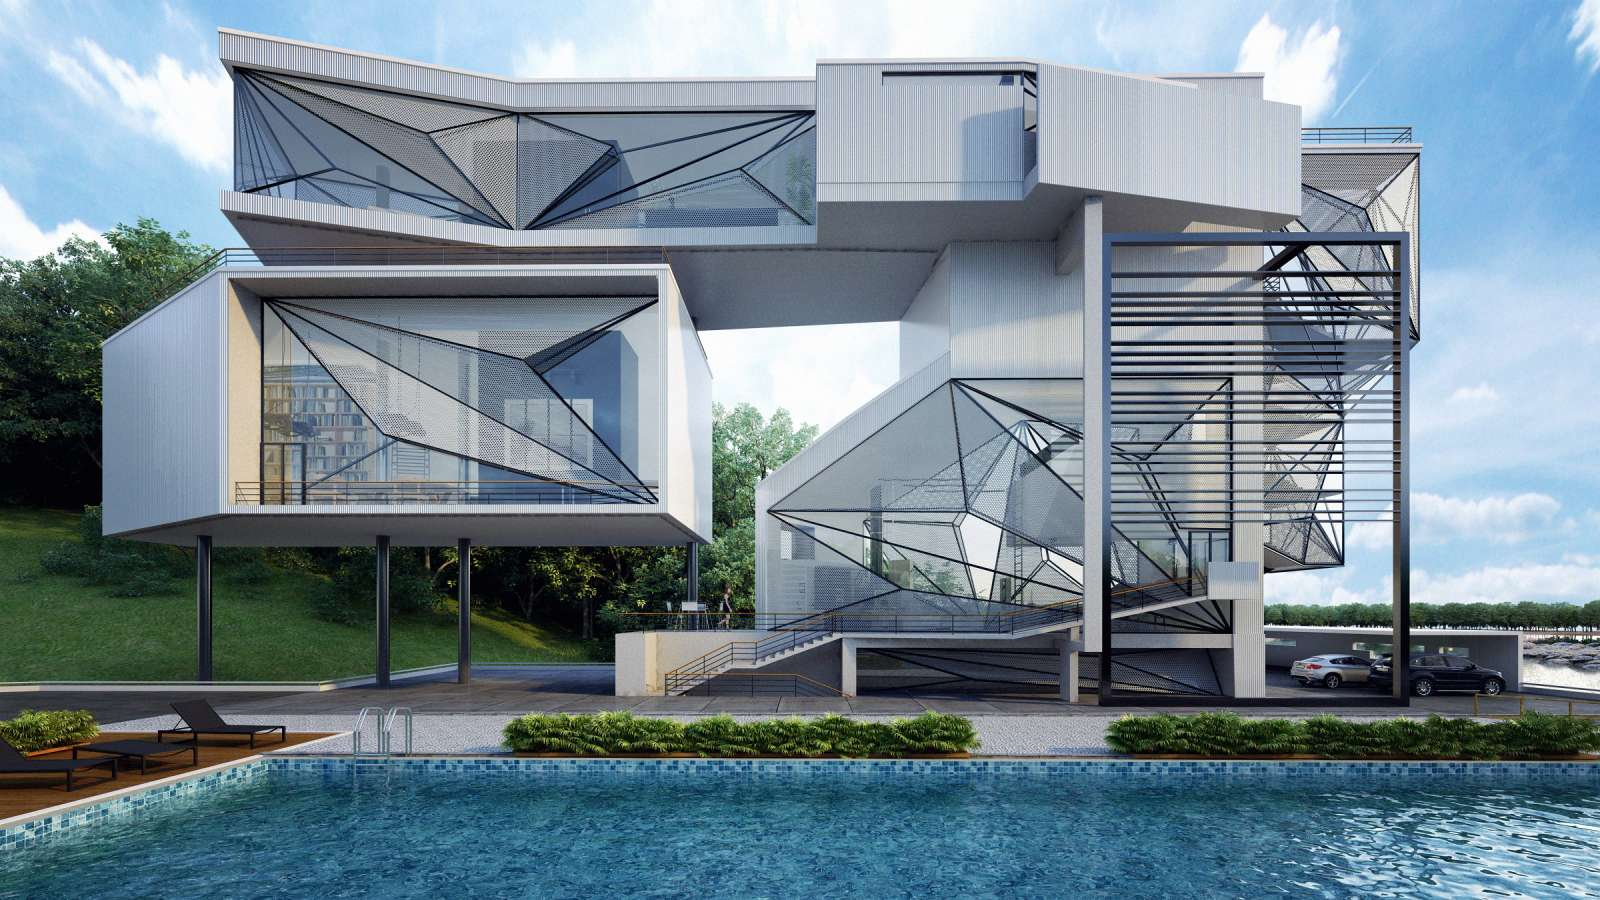 01-Aviator-s-Villa-by-Urban-Office-Architecture